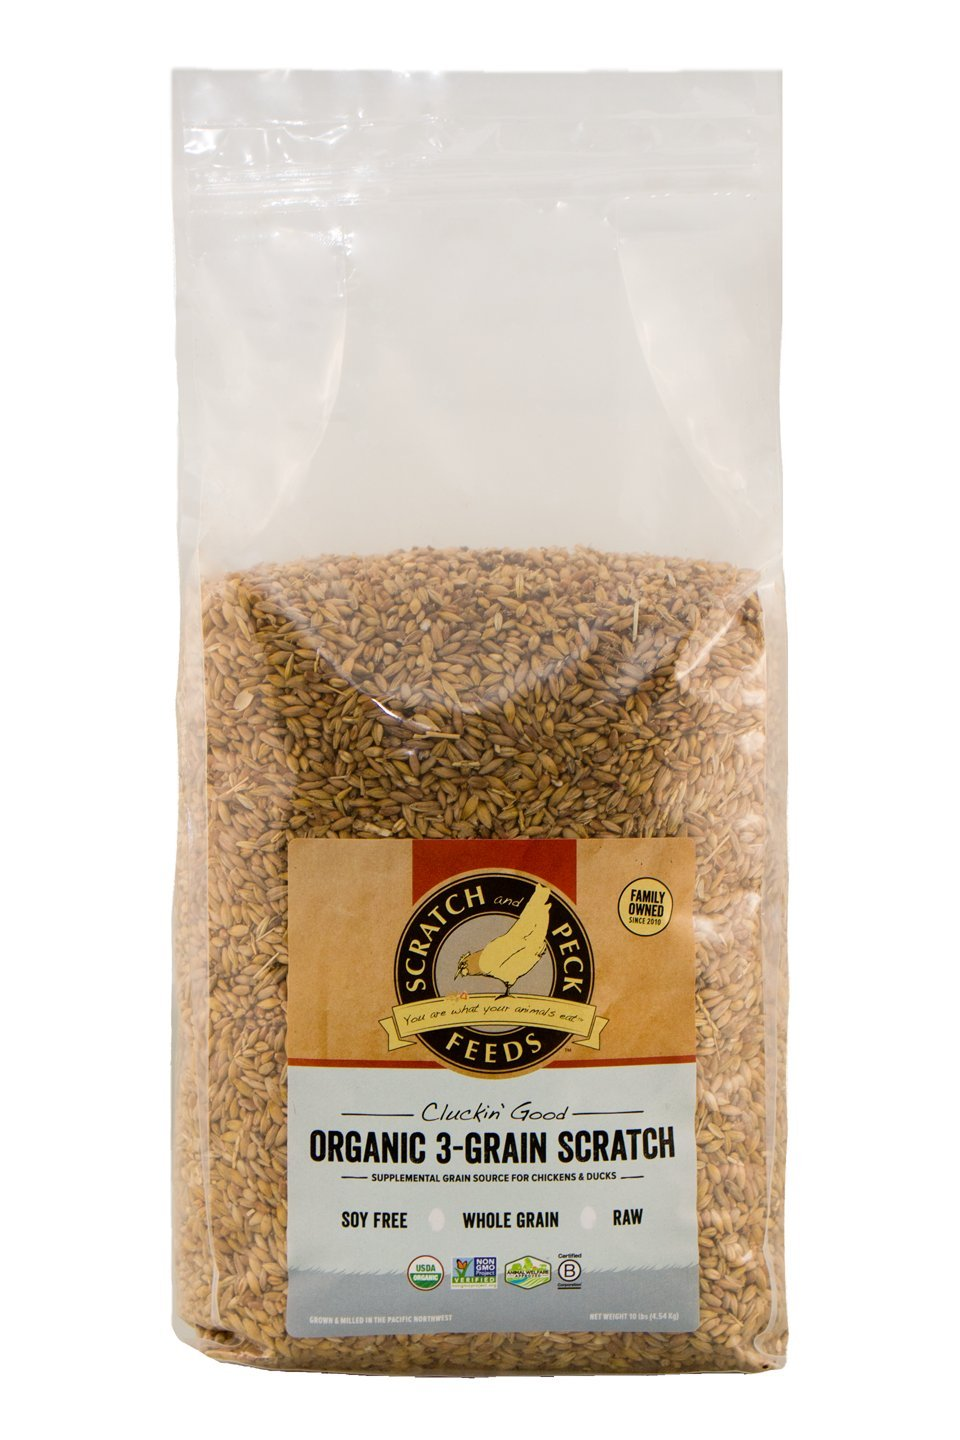 Scratch and Peck Feeds - Cluckin' Good Organic 3-Grain Scratch for Chickens and Ducks - Organic and Non-GMO Project Verified - 10-lbs by Scratch and Peck Feeds